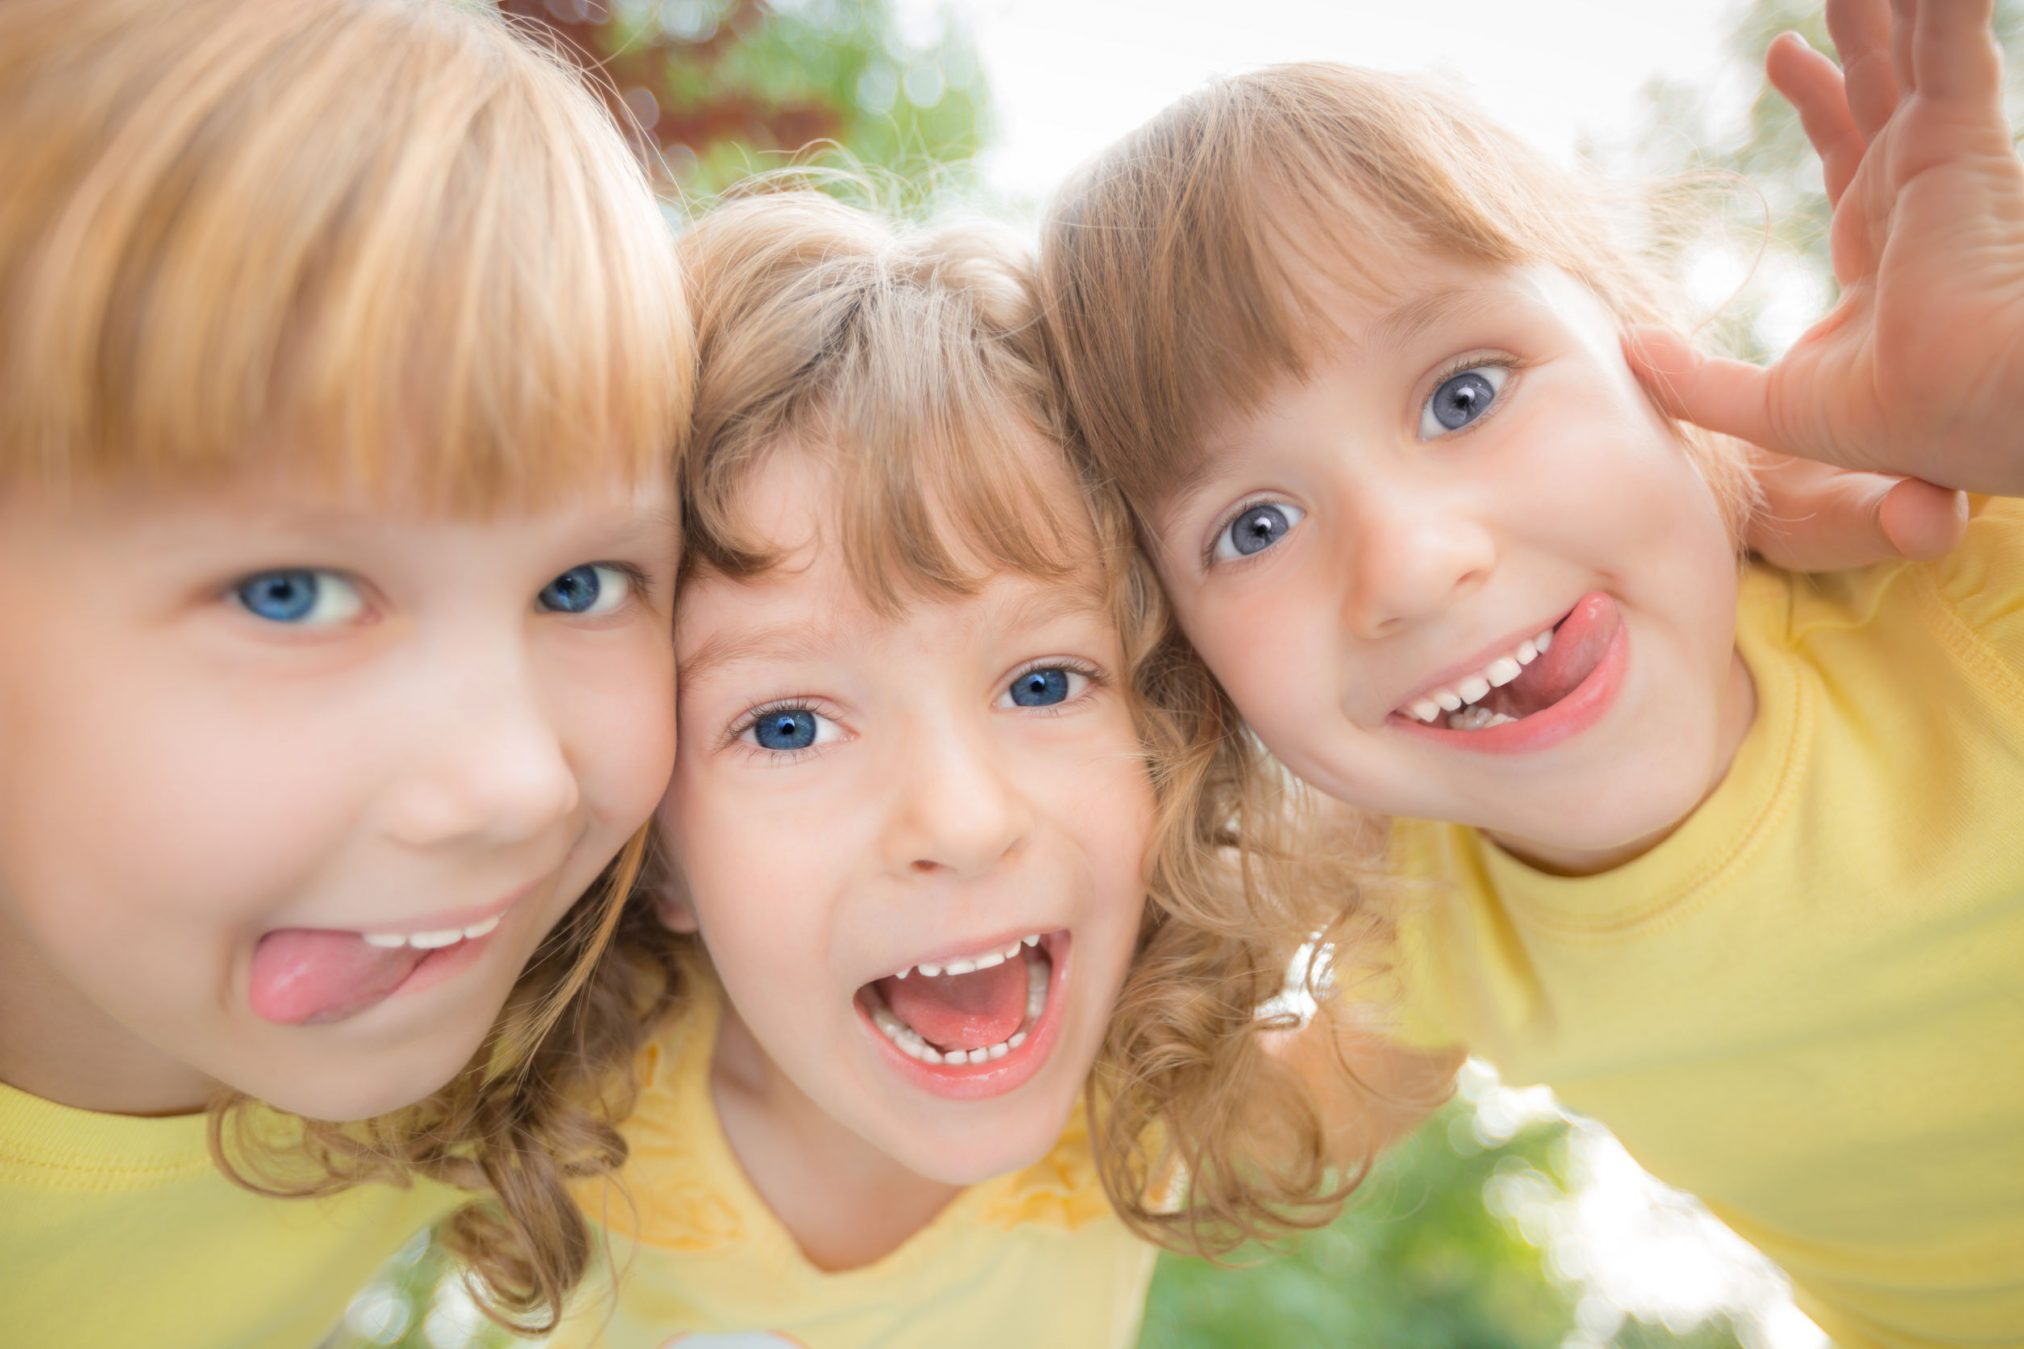 three girls playing and pulling silly faces